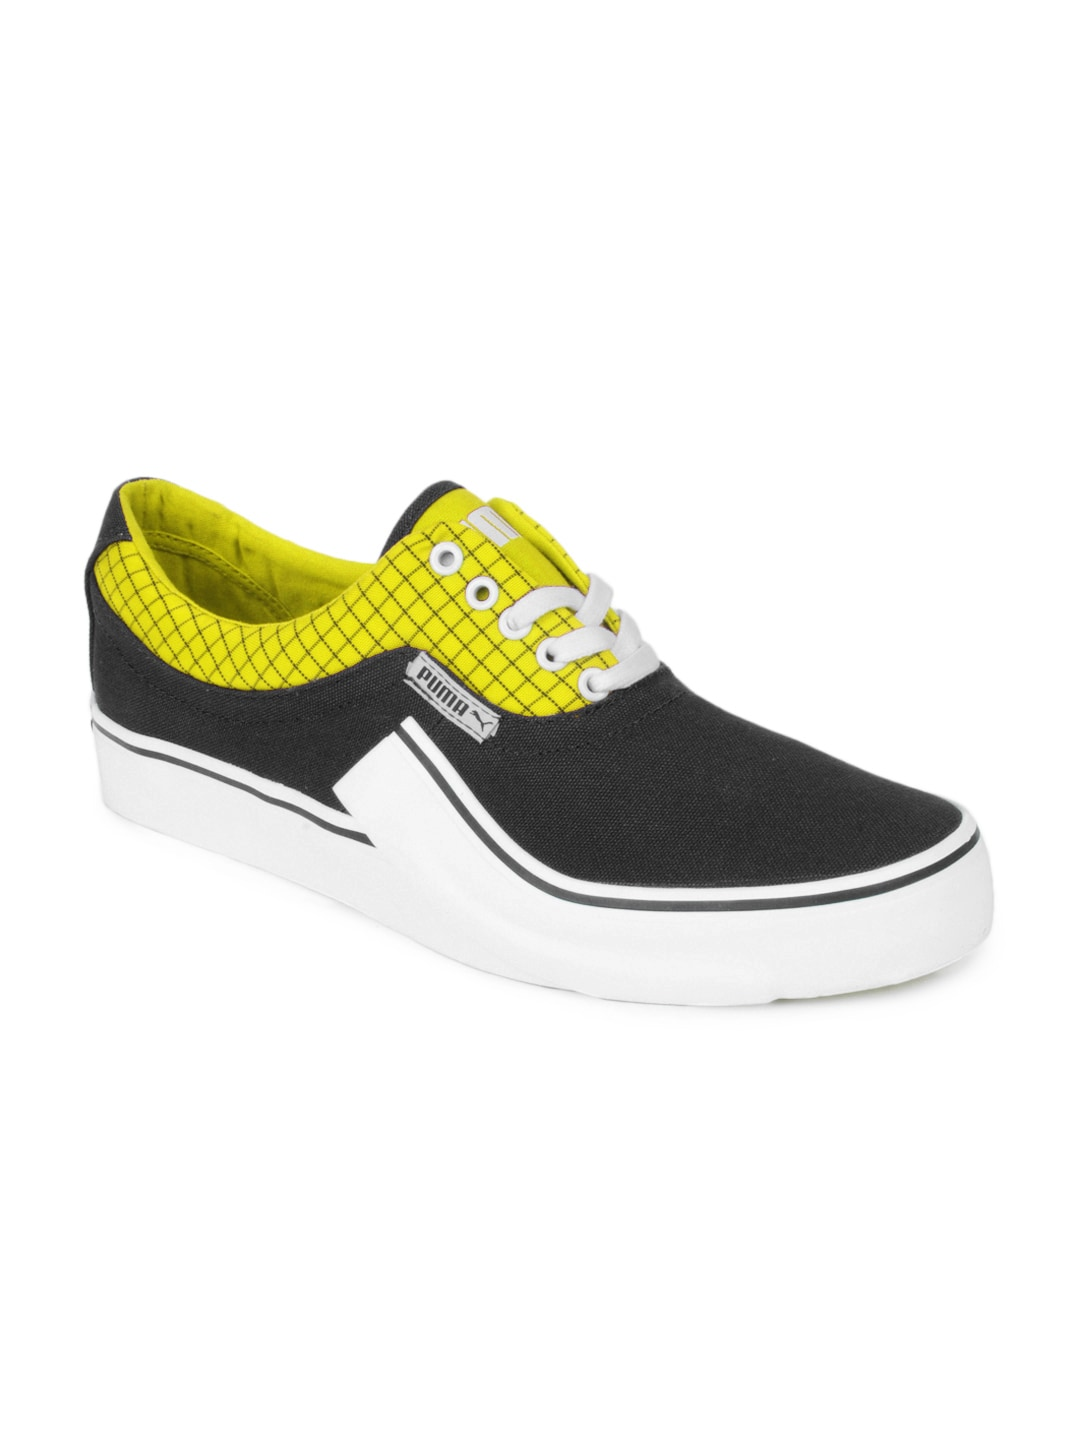 Ignis Puma S Casual Shoes Buy Ignis Puma S Casual Shoes Online In